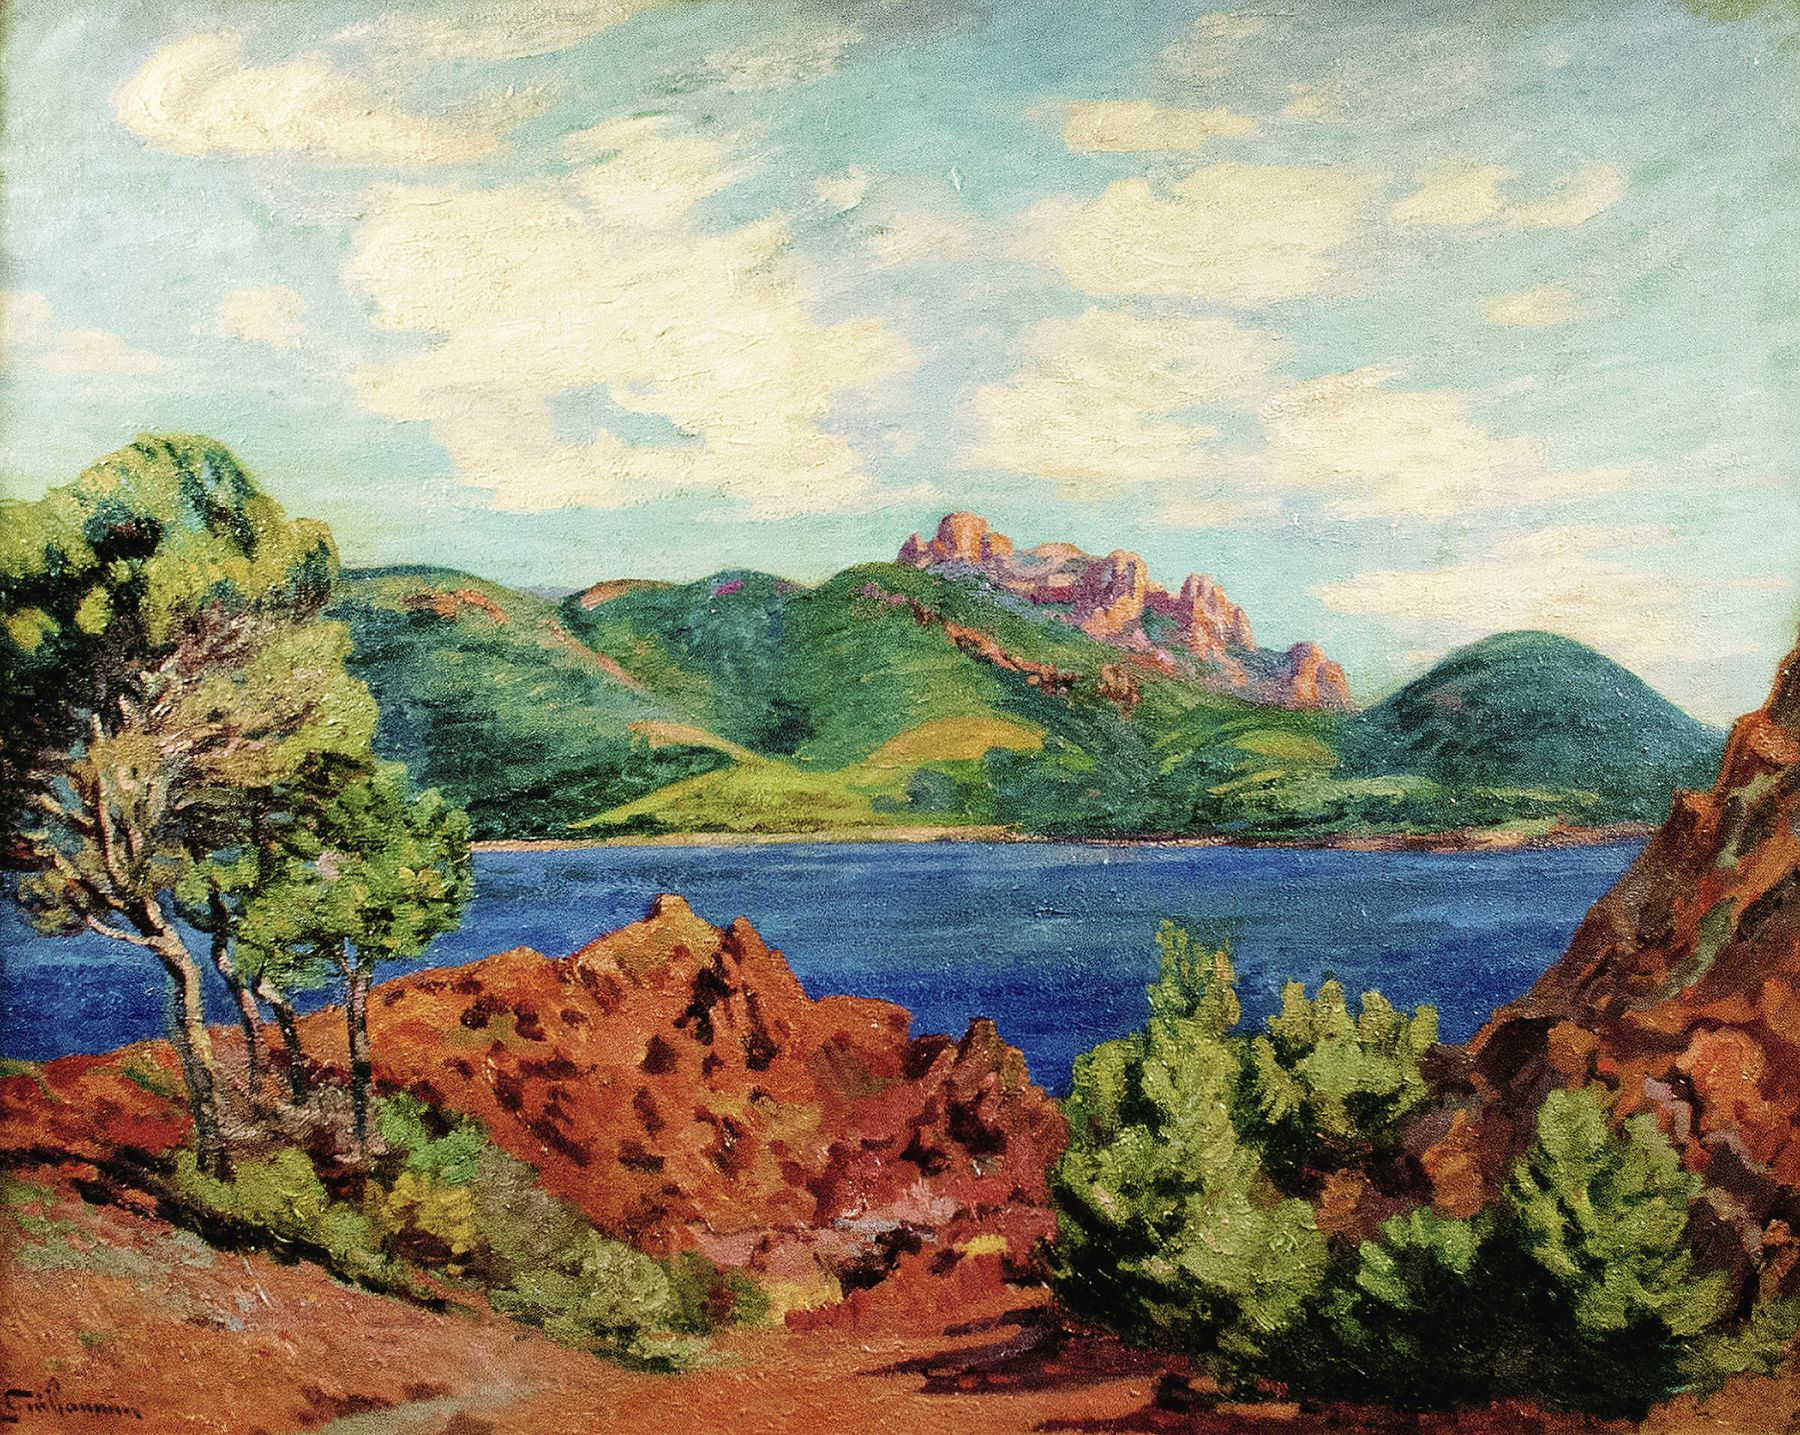 Jean-Baptiste-Armand Guillaumin - The Bay of Agay